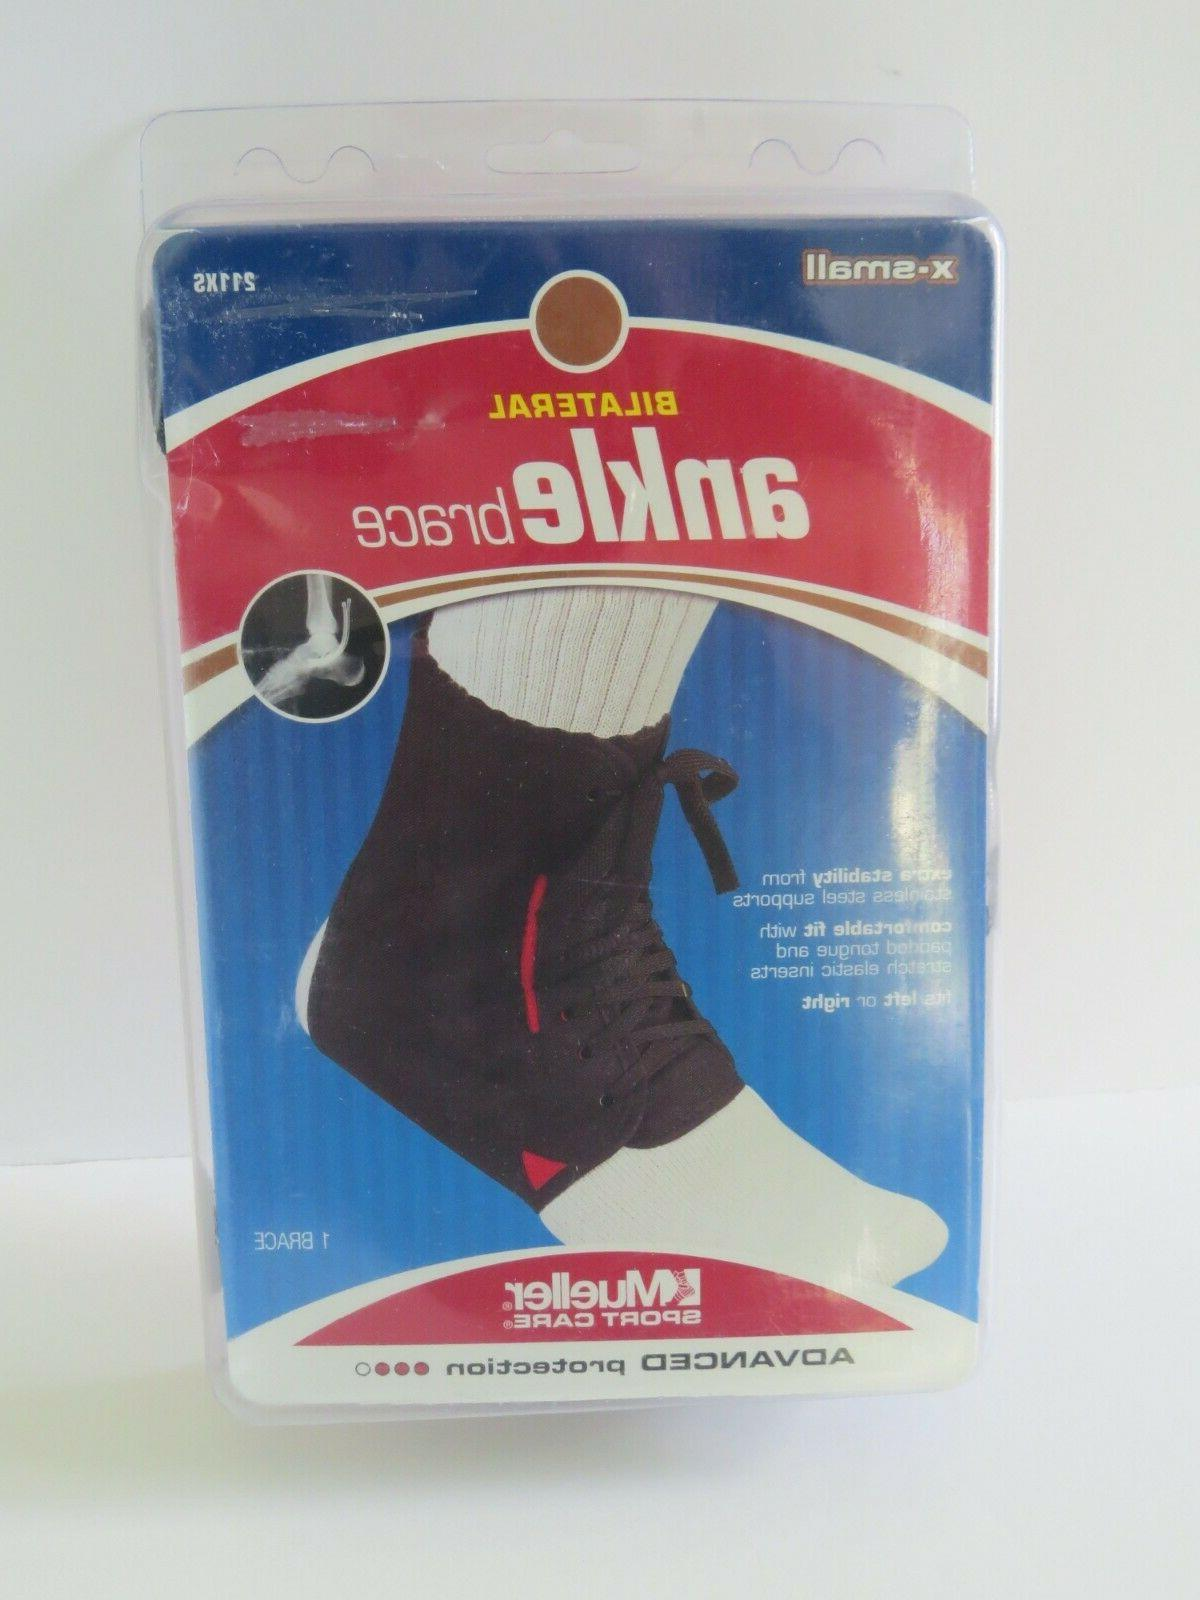 bilateral ankle brace 211xs extra small opened